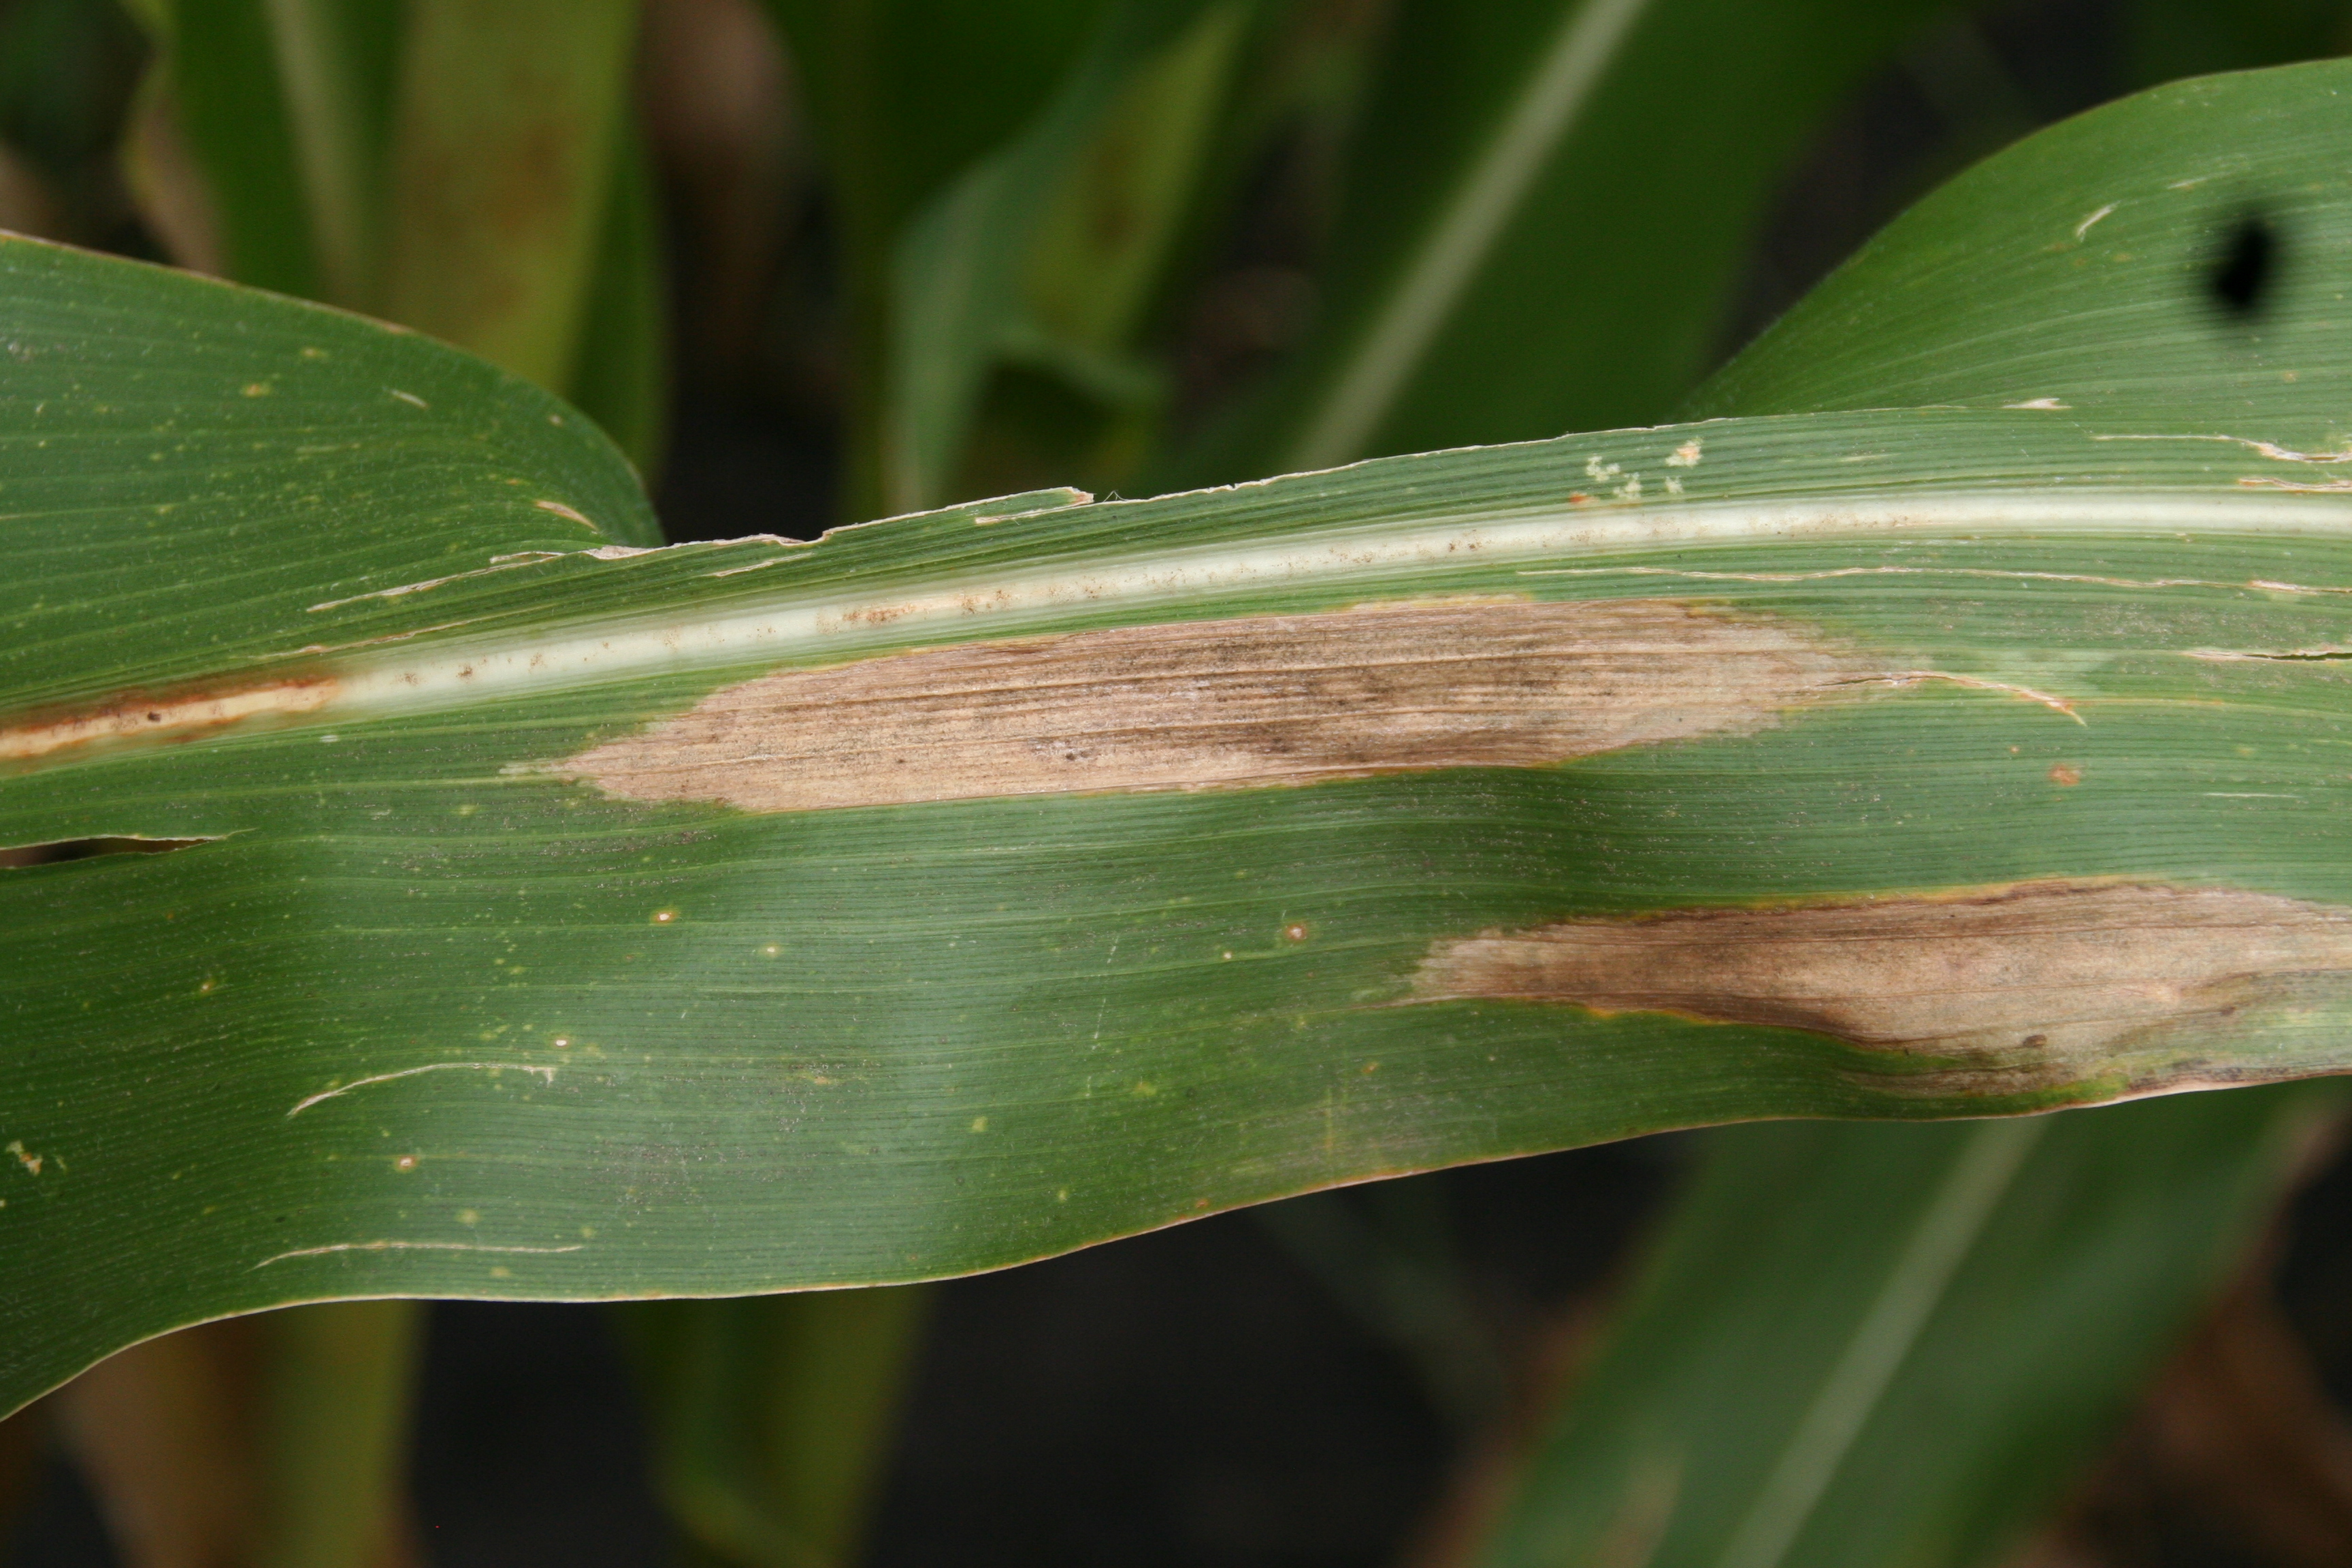 'Cigar-shaped' northern corn leaf blight lesions.